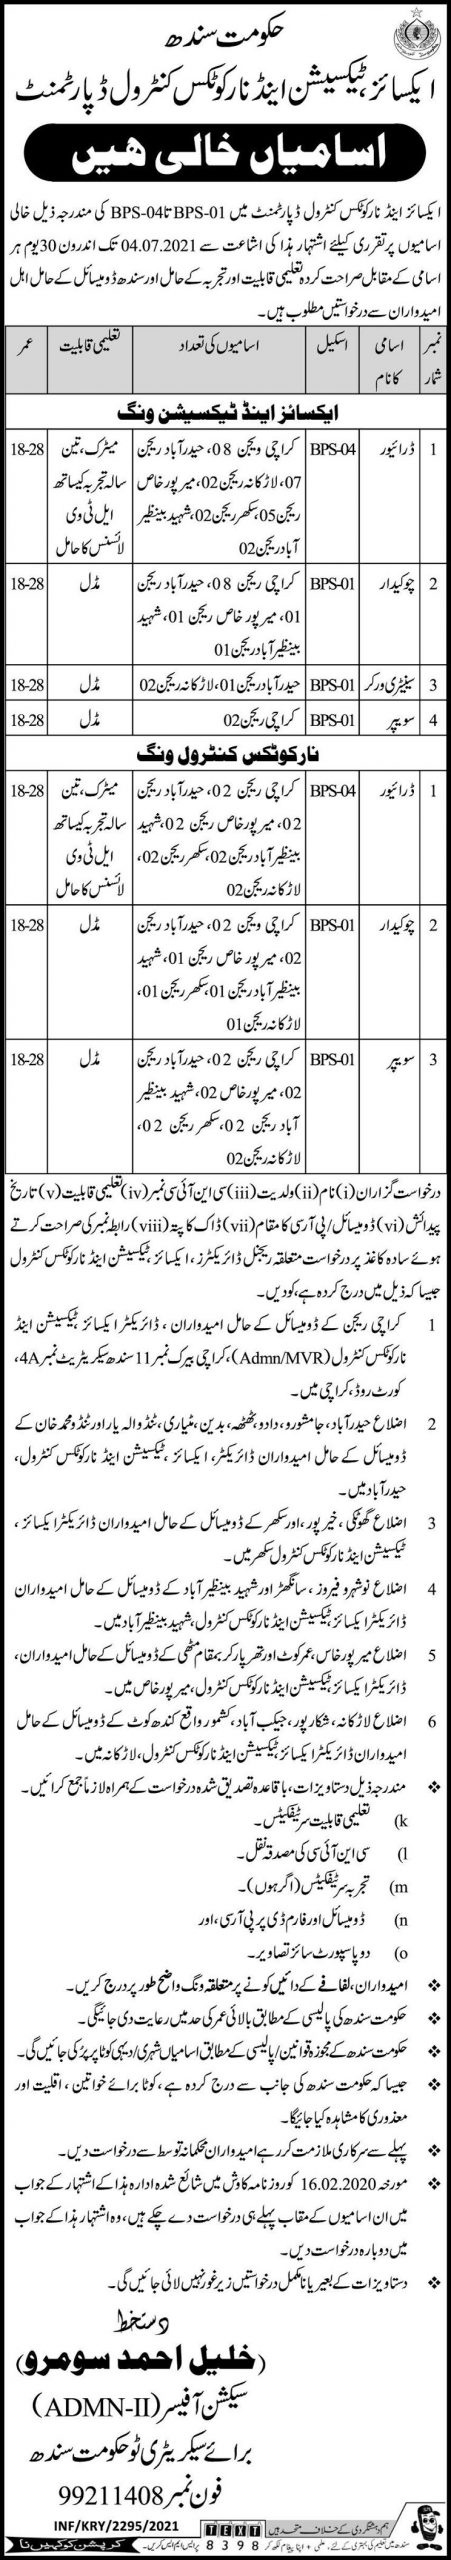 Excise And Taxation Anti Narcotics Department Jobs 2021 | Apply - Online